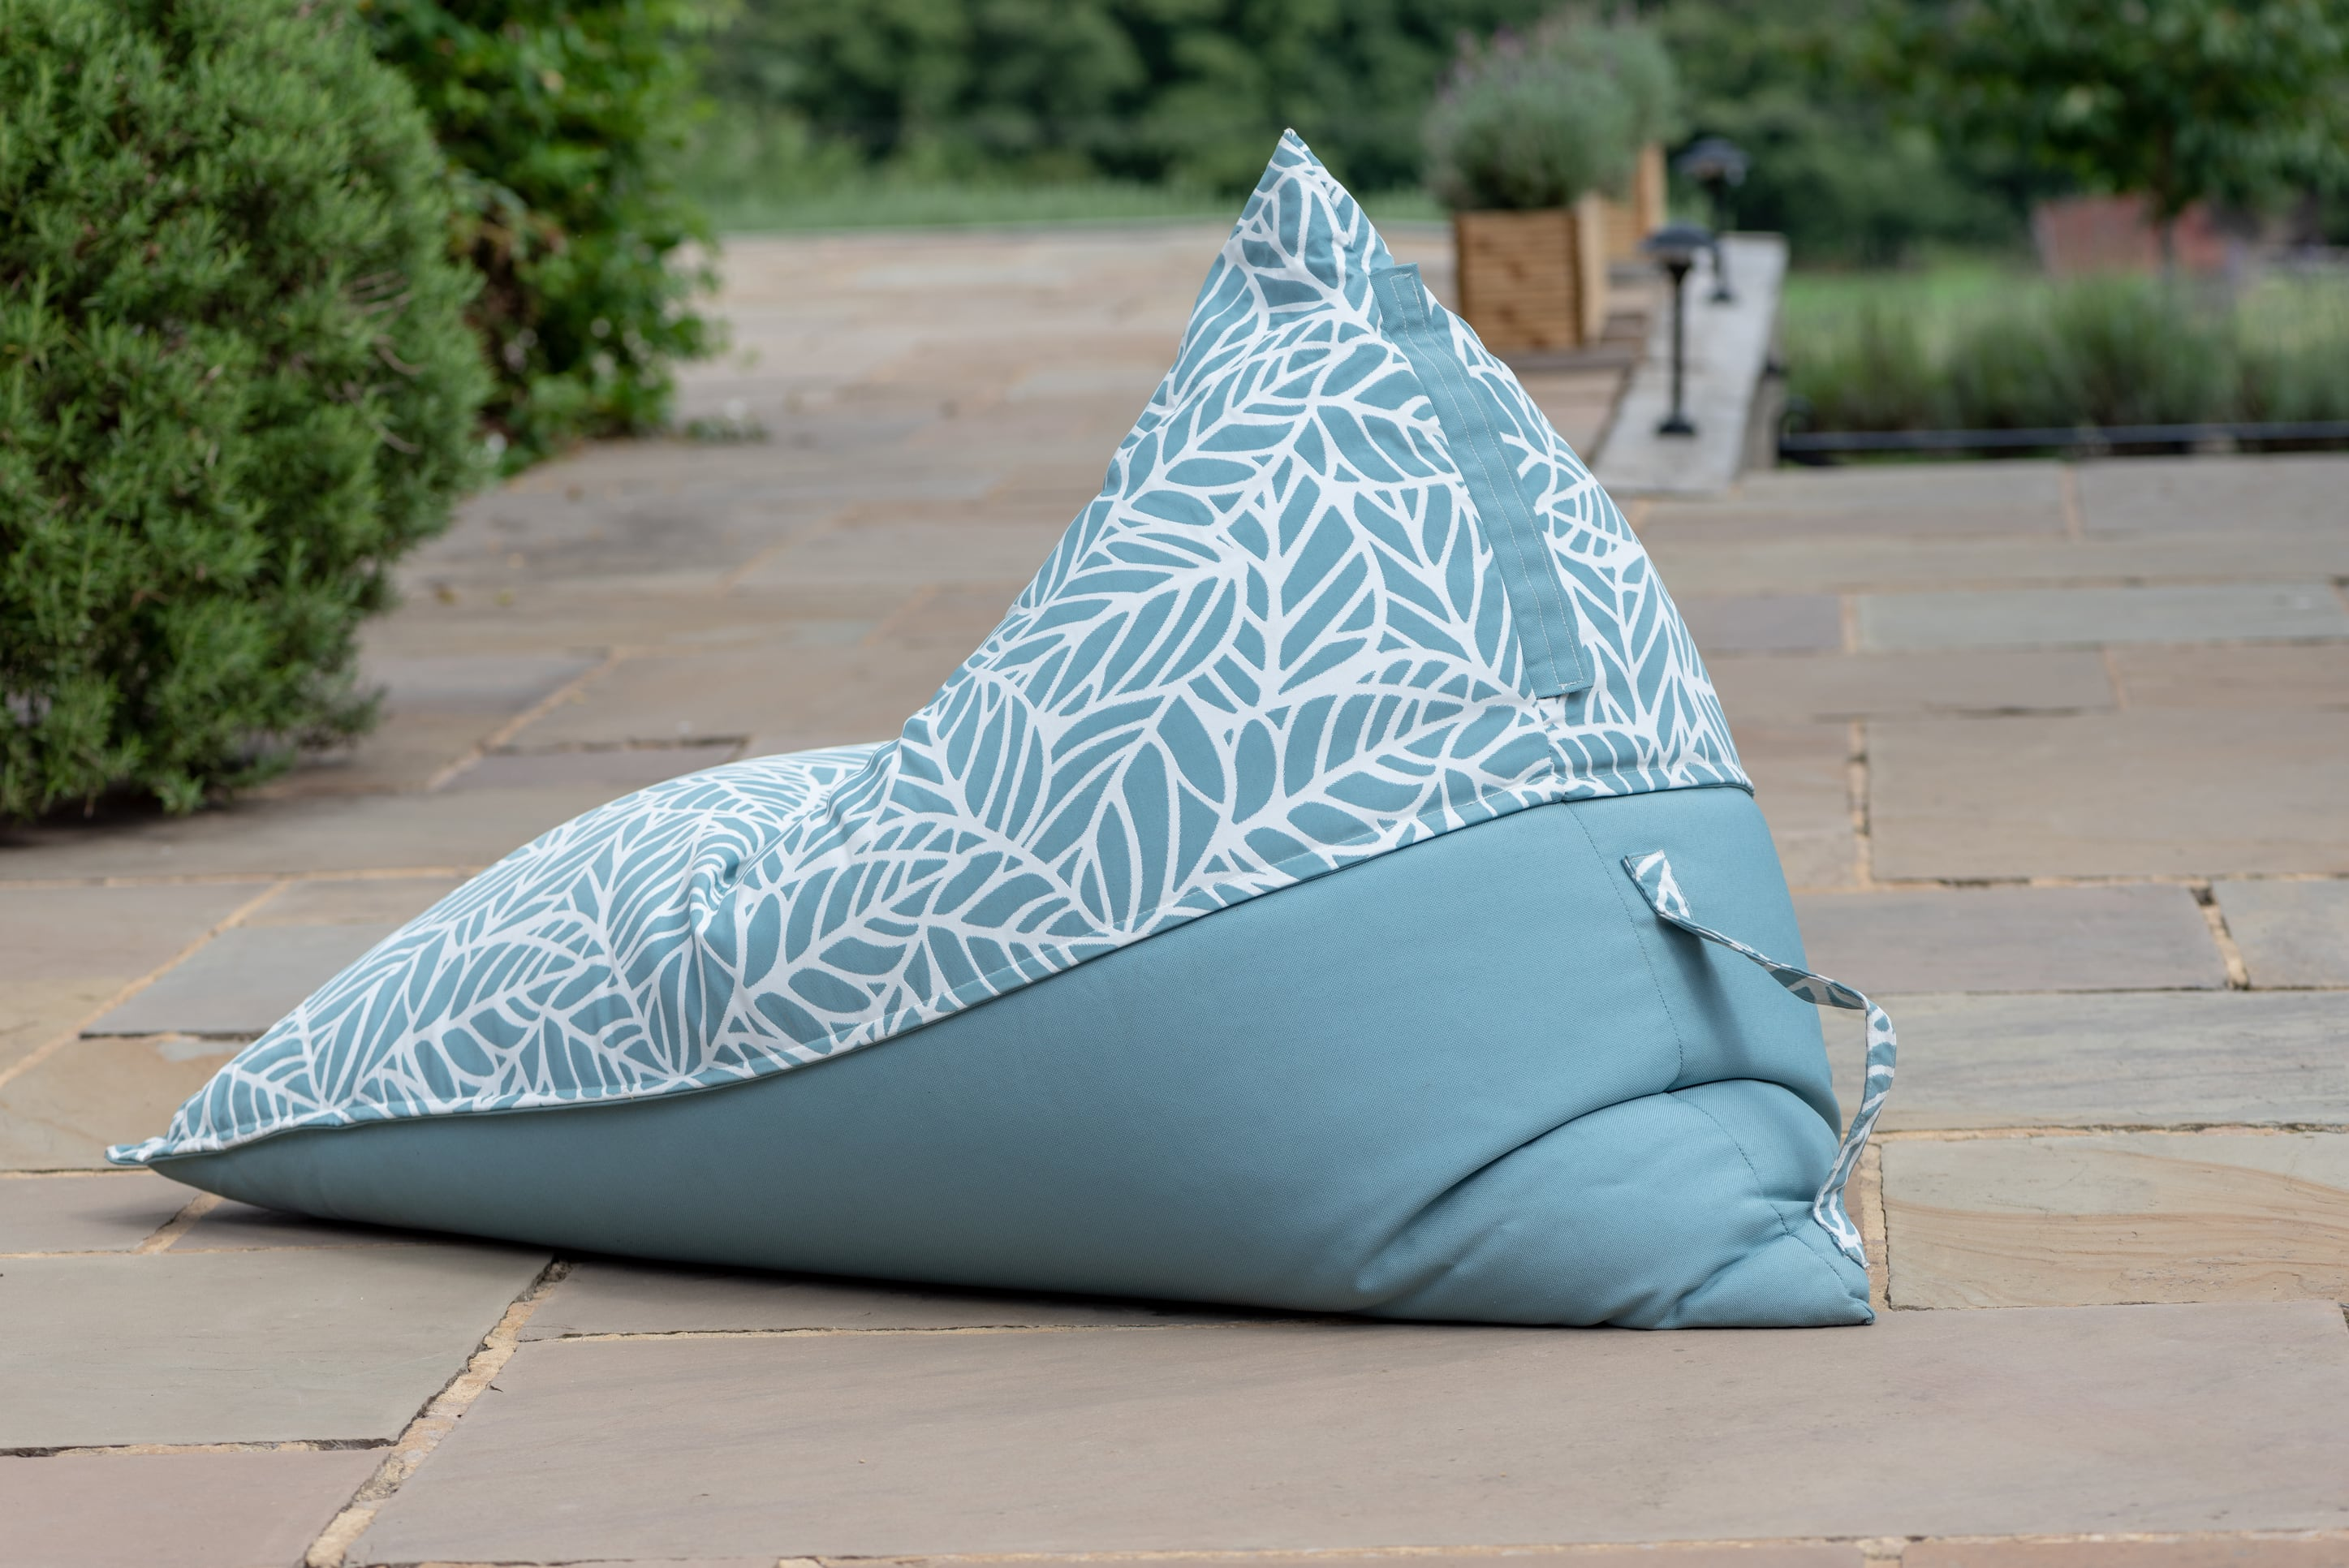 Armadillo Sun bean bag lounger in ocean blue and white palm pattern outdoor